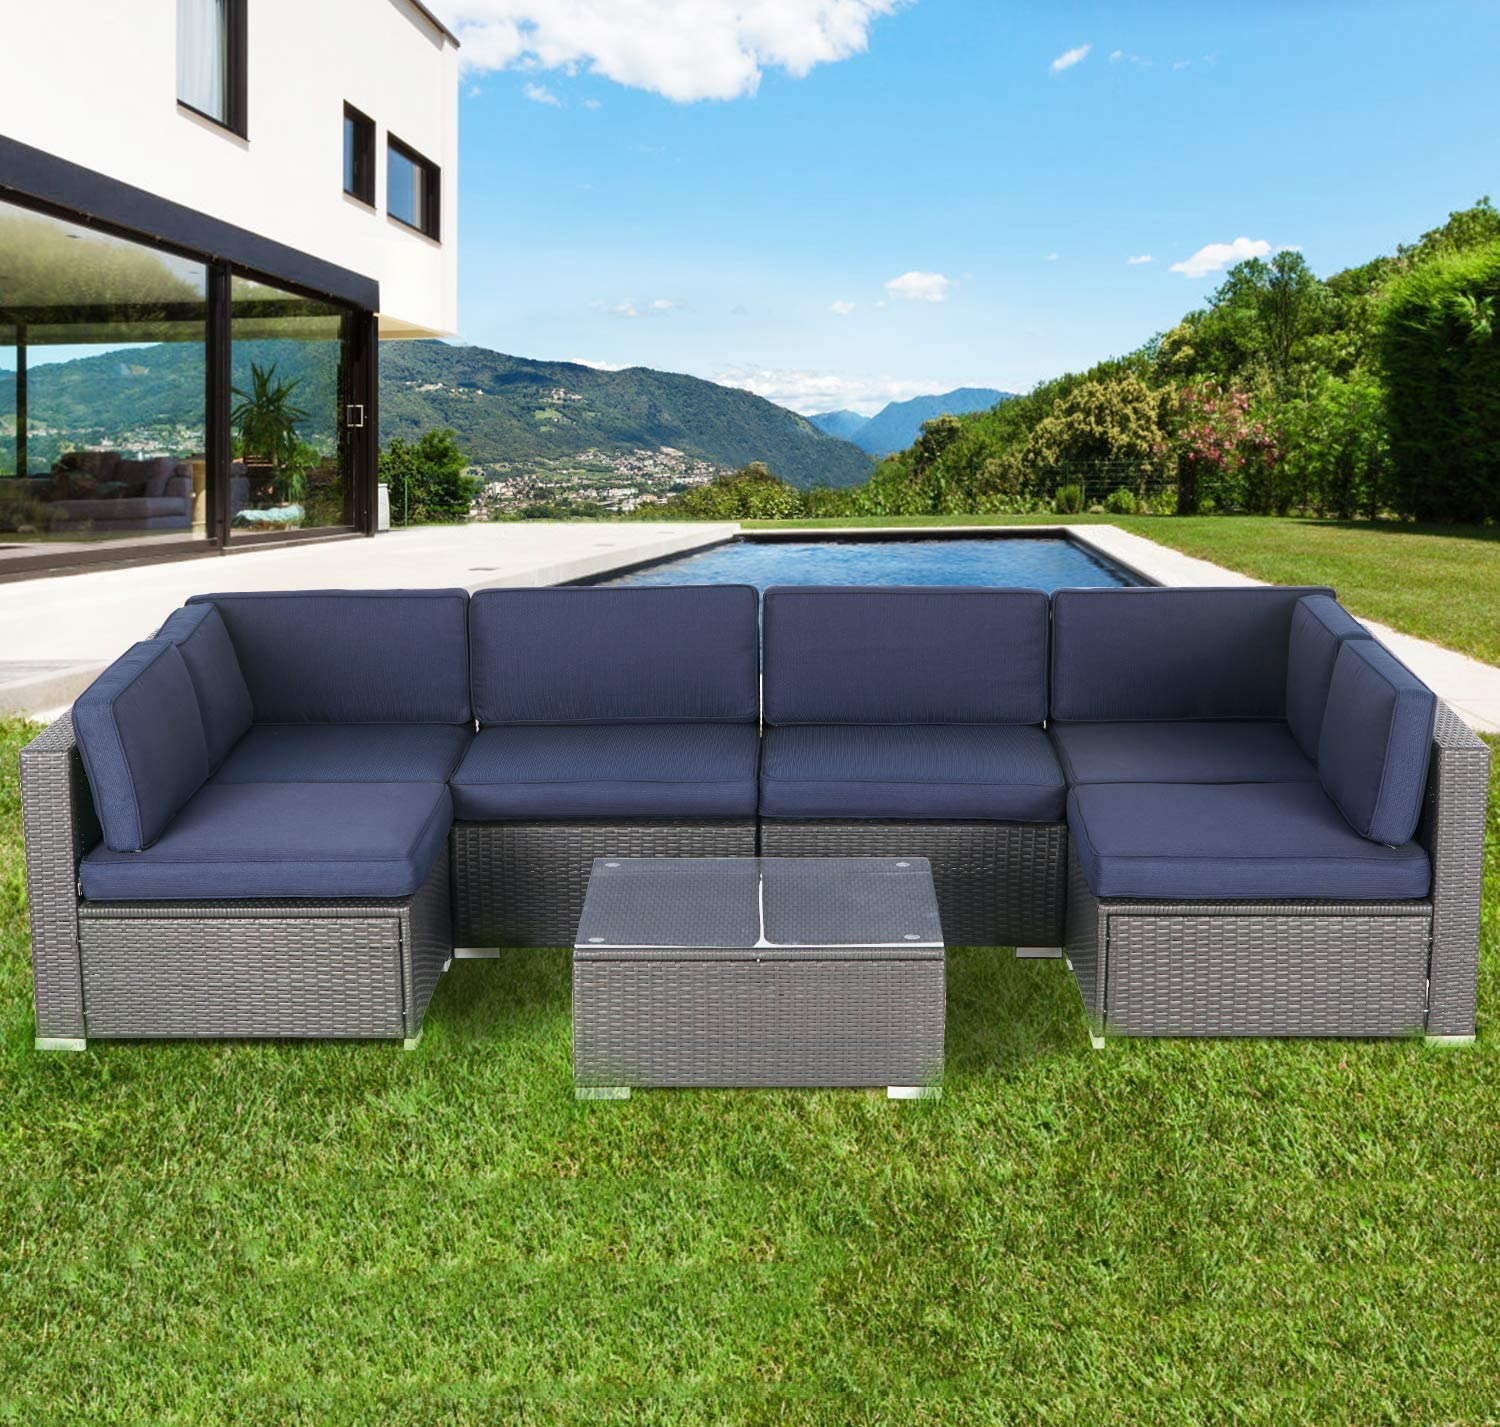 Incbruce Outdoor Patio Furniture Set 7-Piece All-Weather Sectional Sofa Outside Couch, Manual Weaving Wicker Rattan Conversation Set with Glass Top Table and Removable Cushions (Navy Blue)